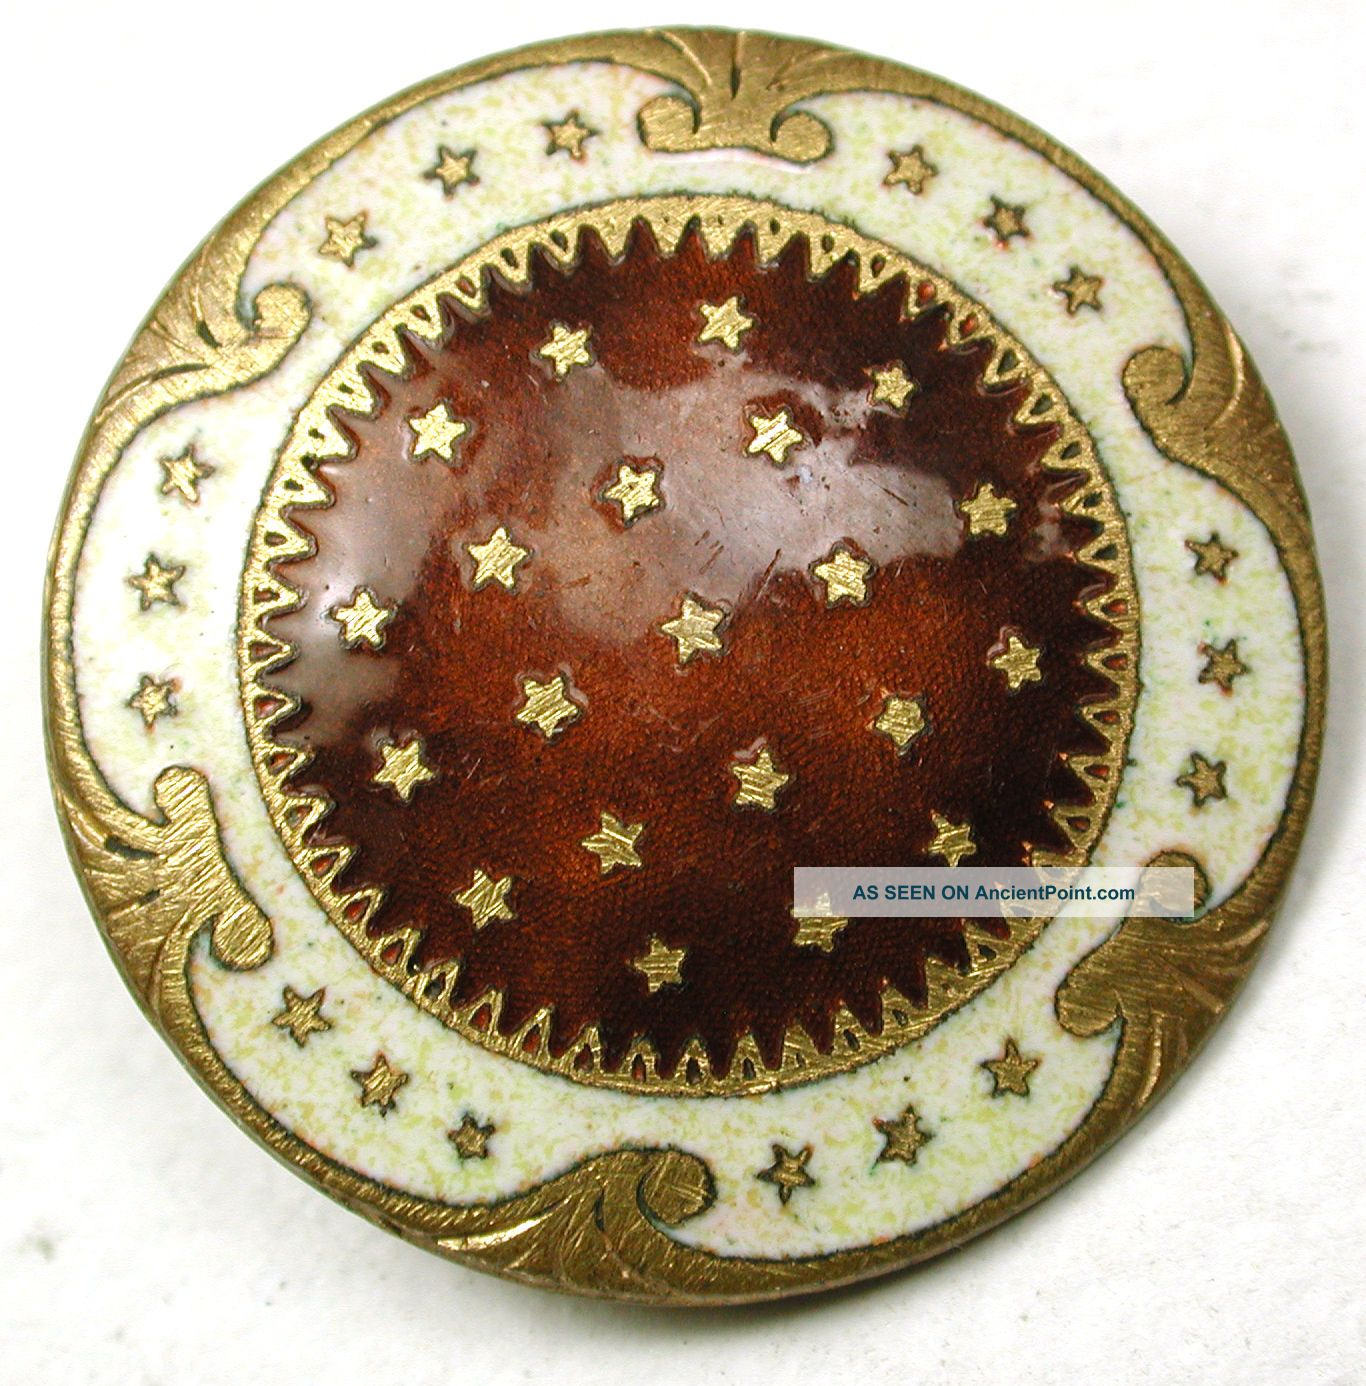 Antique French Enamel Button Caramel & Cream W/ Stars Design - 1 & 1/16